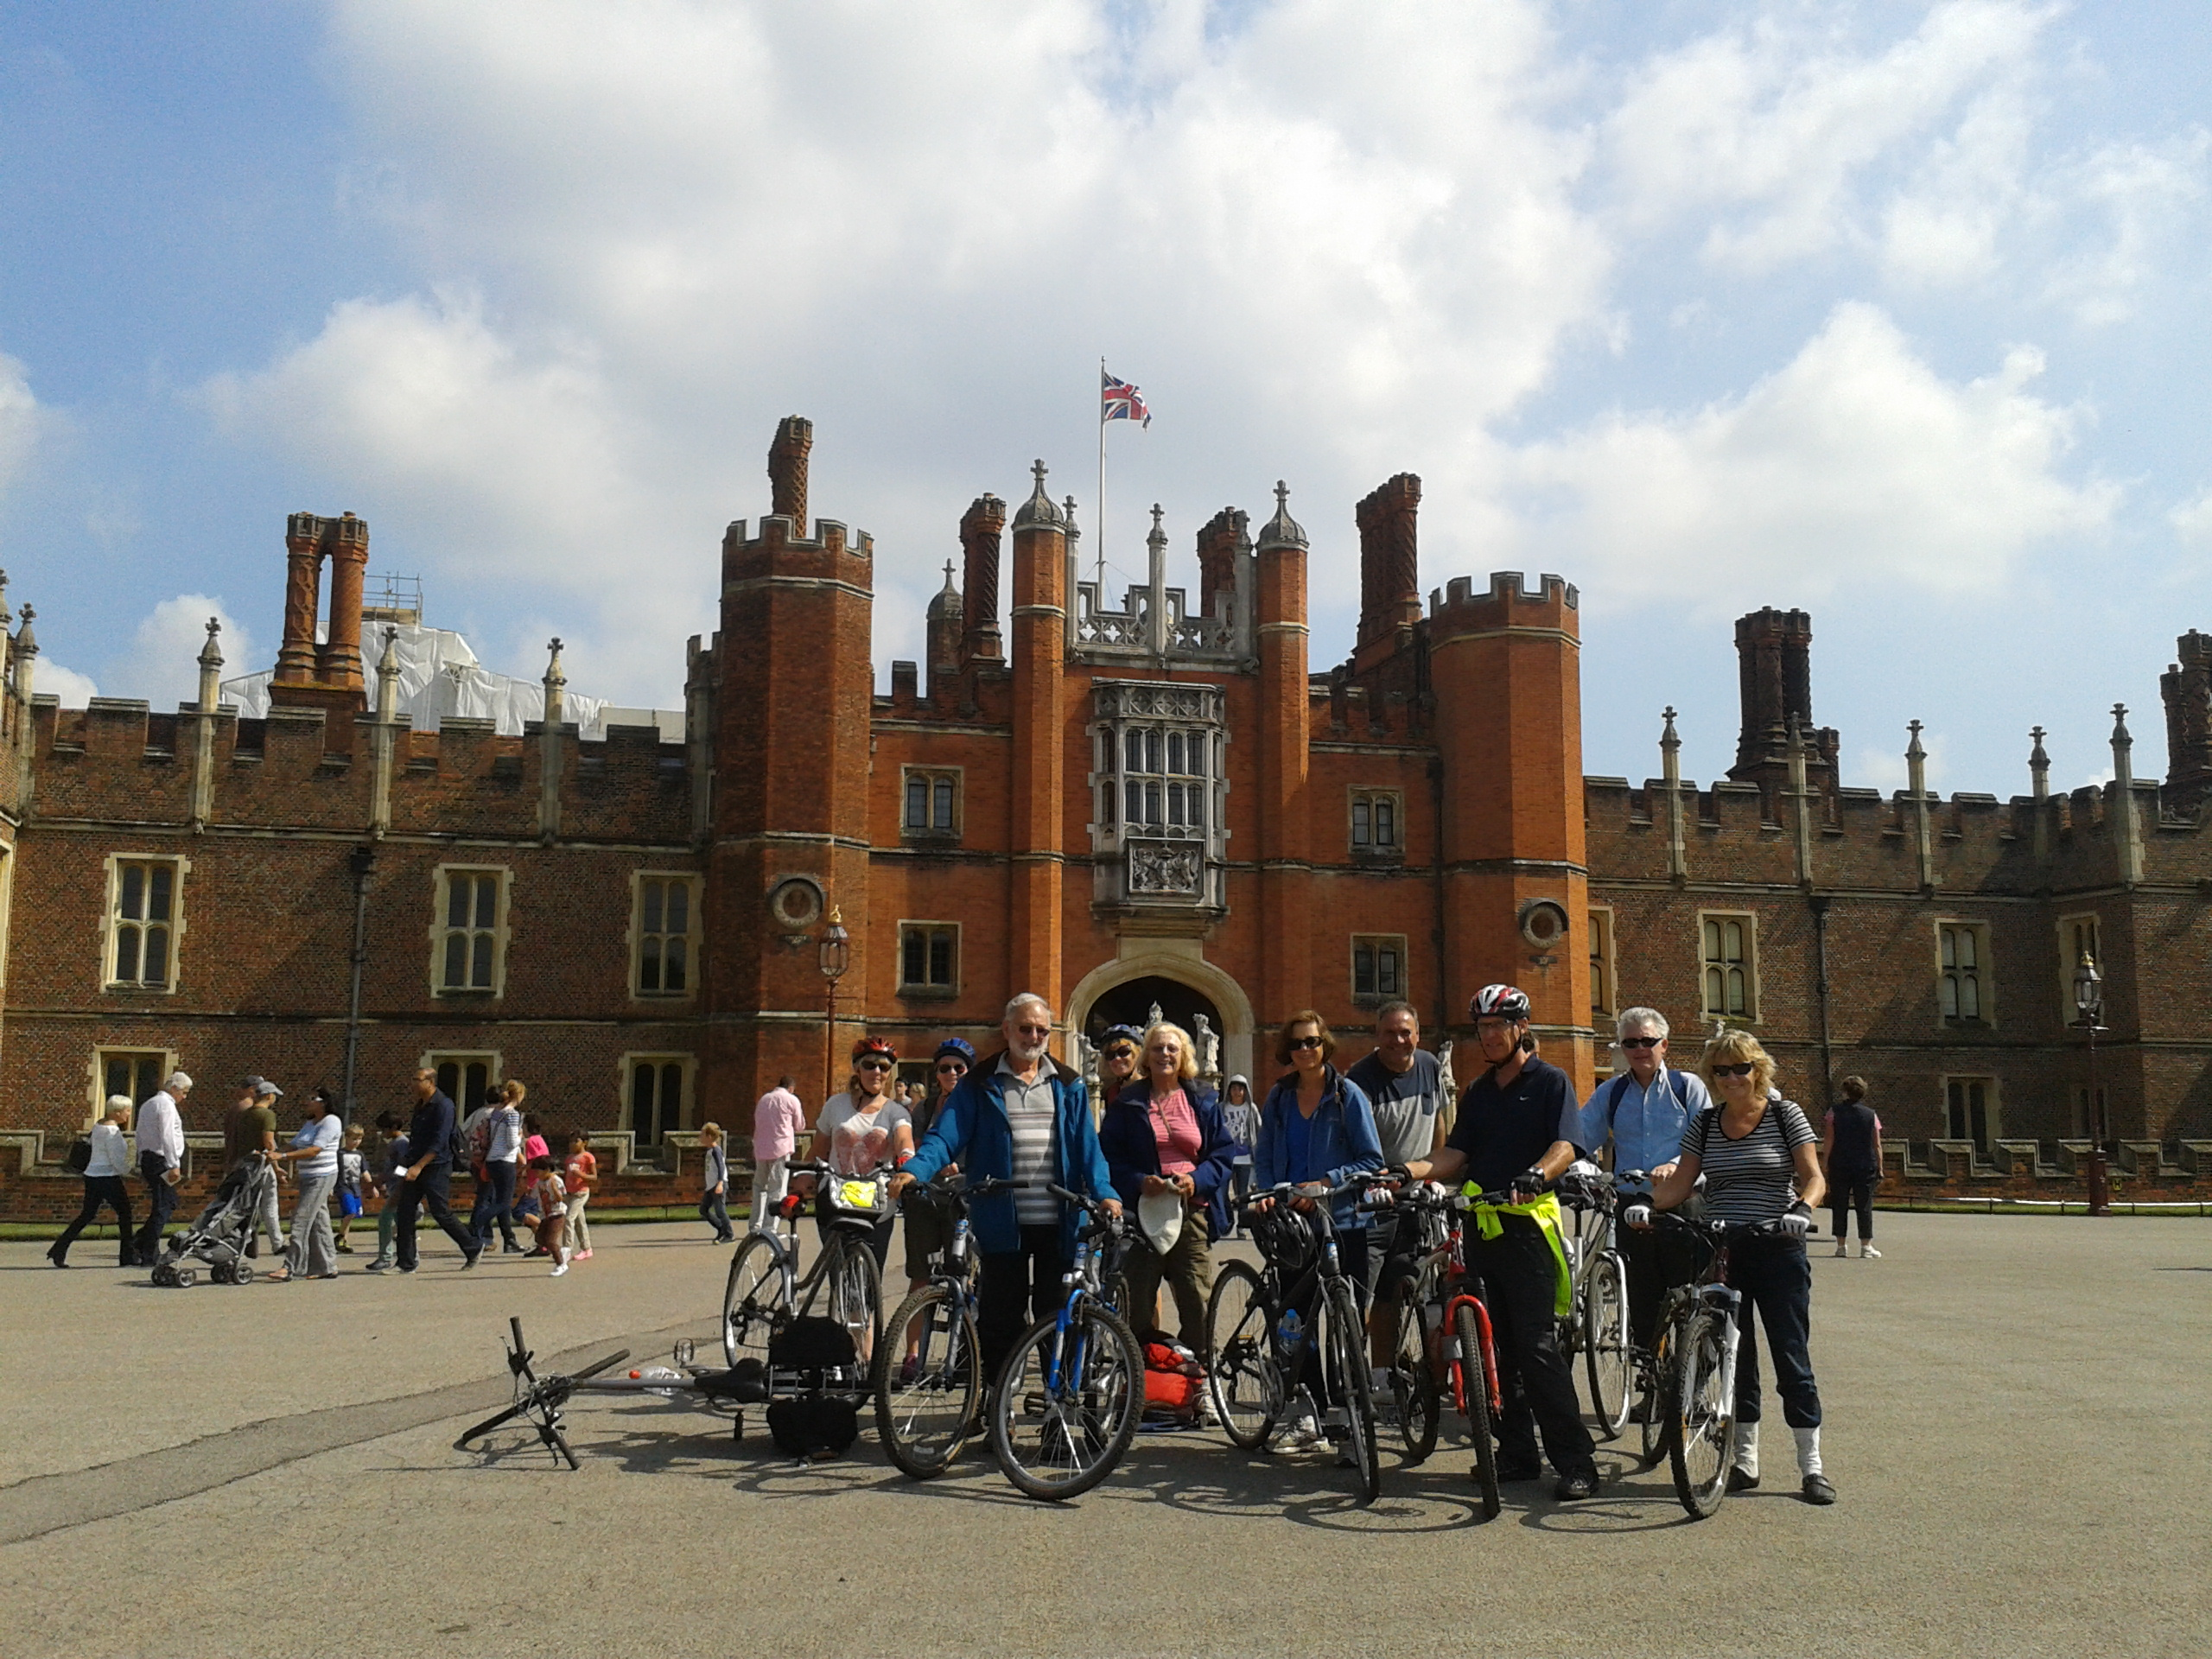 The obligatory tourist photo of our Merry Pedallers is a must on this lovely day!